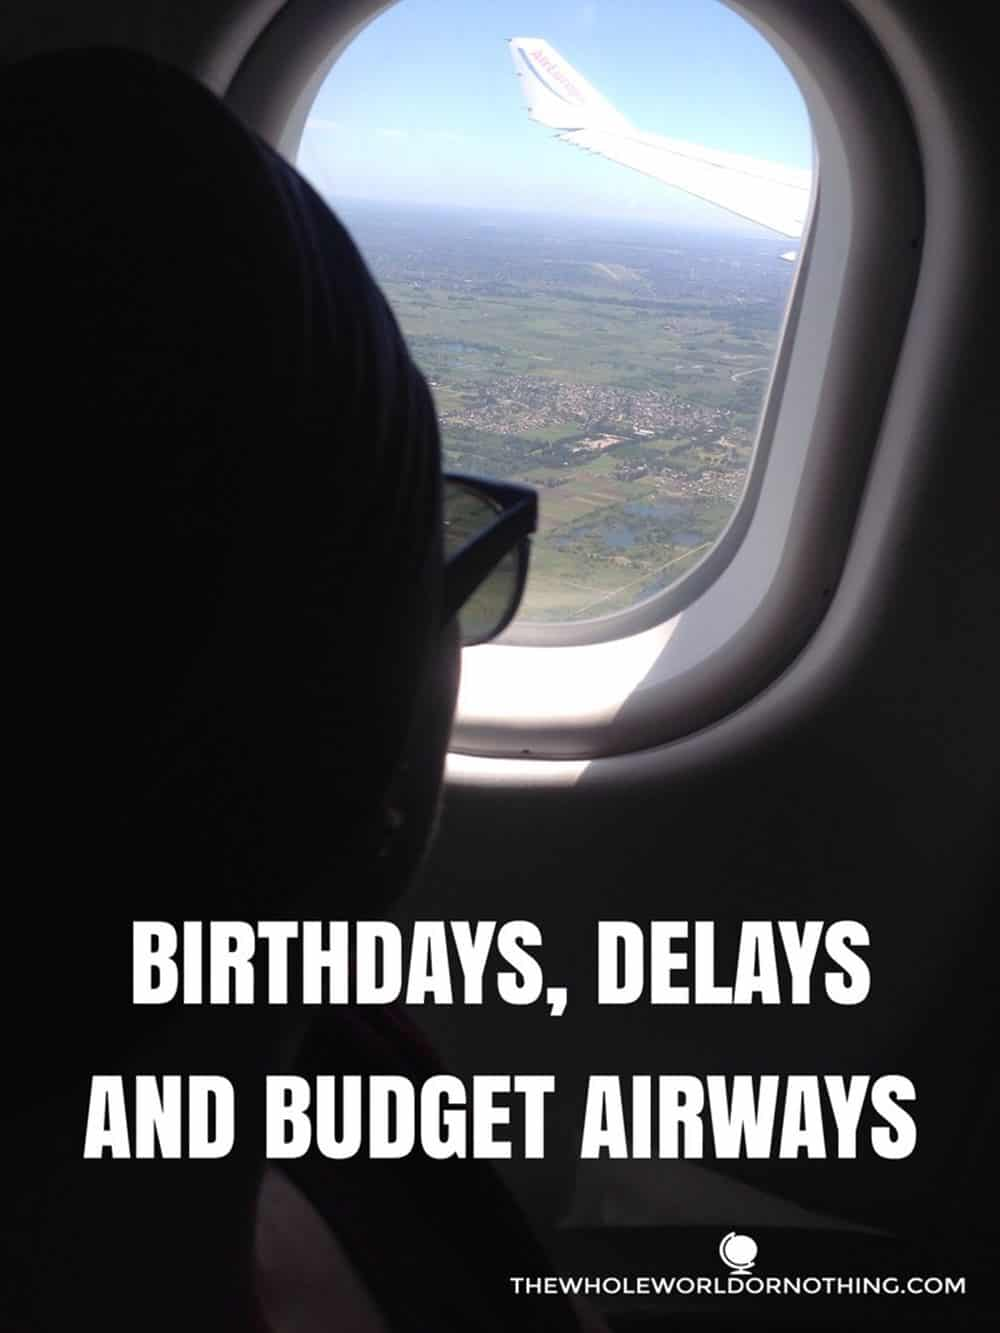 Sarah at the window plane with text overlay Birthdays, Delays and Budget Airways